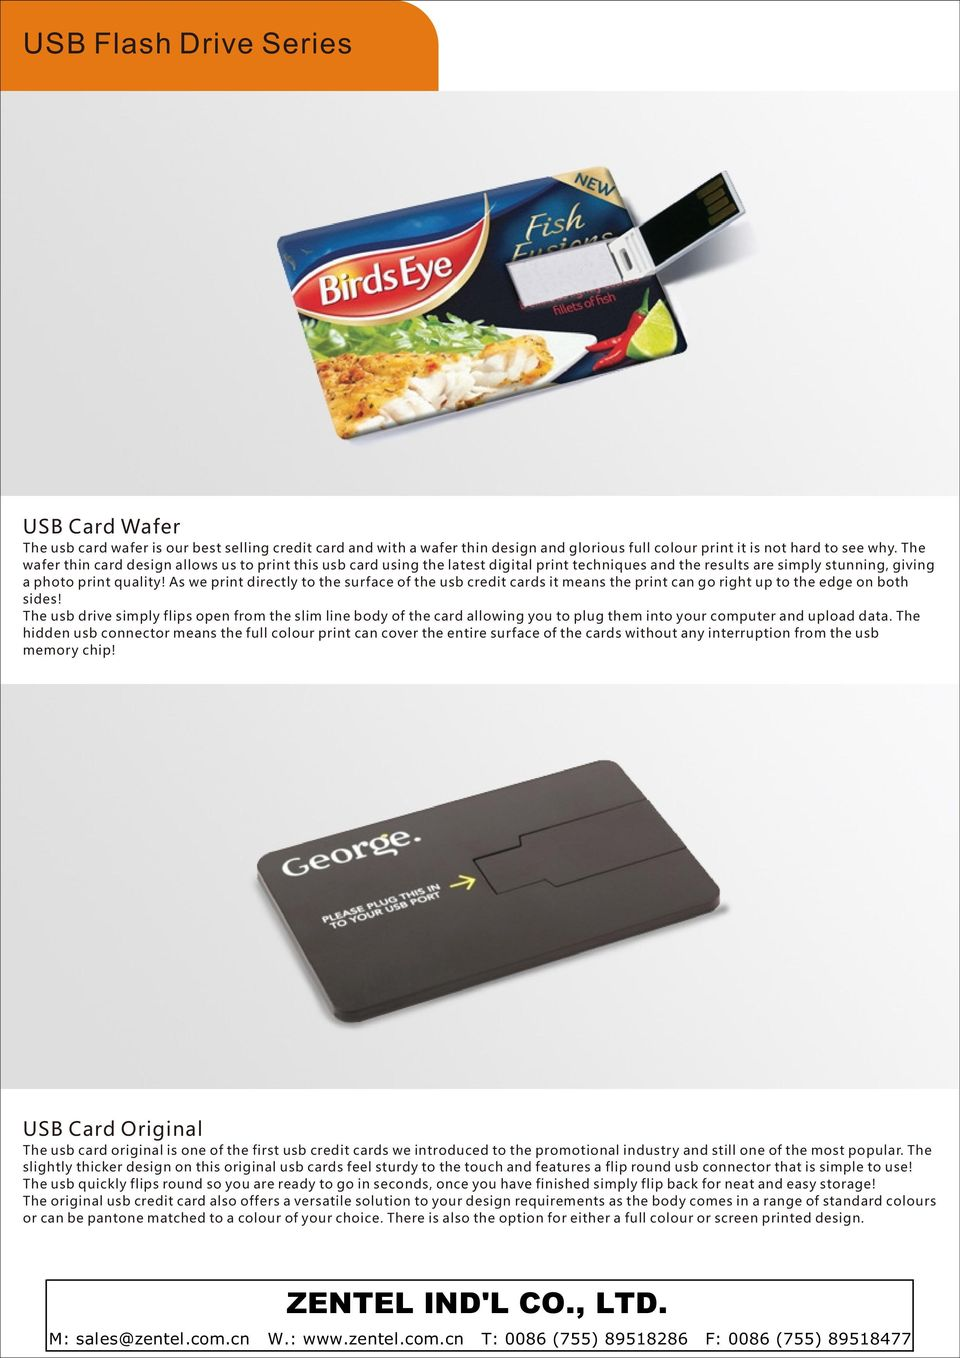 As we print directly to the surface of the usb credit cards it means the print can go right up to the edge on both sides!